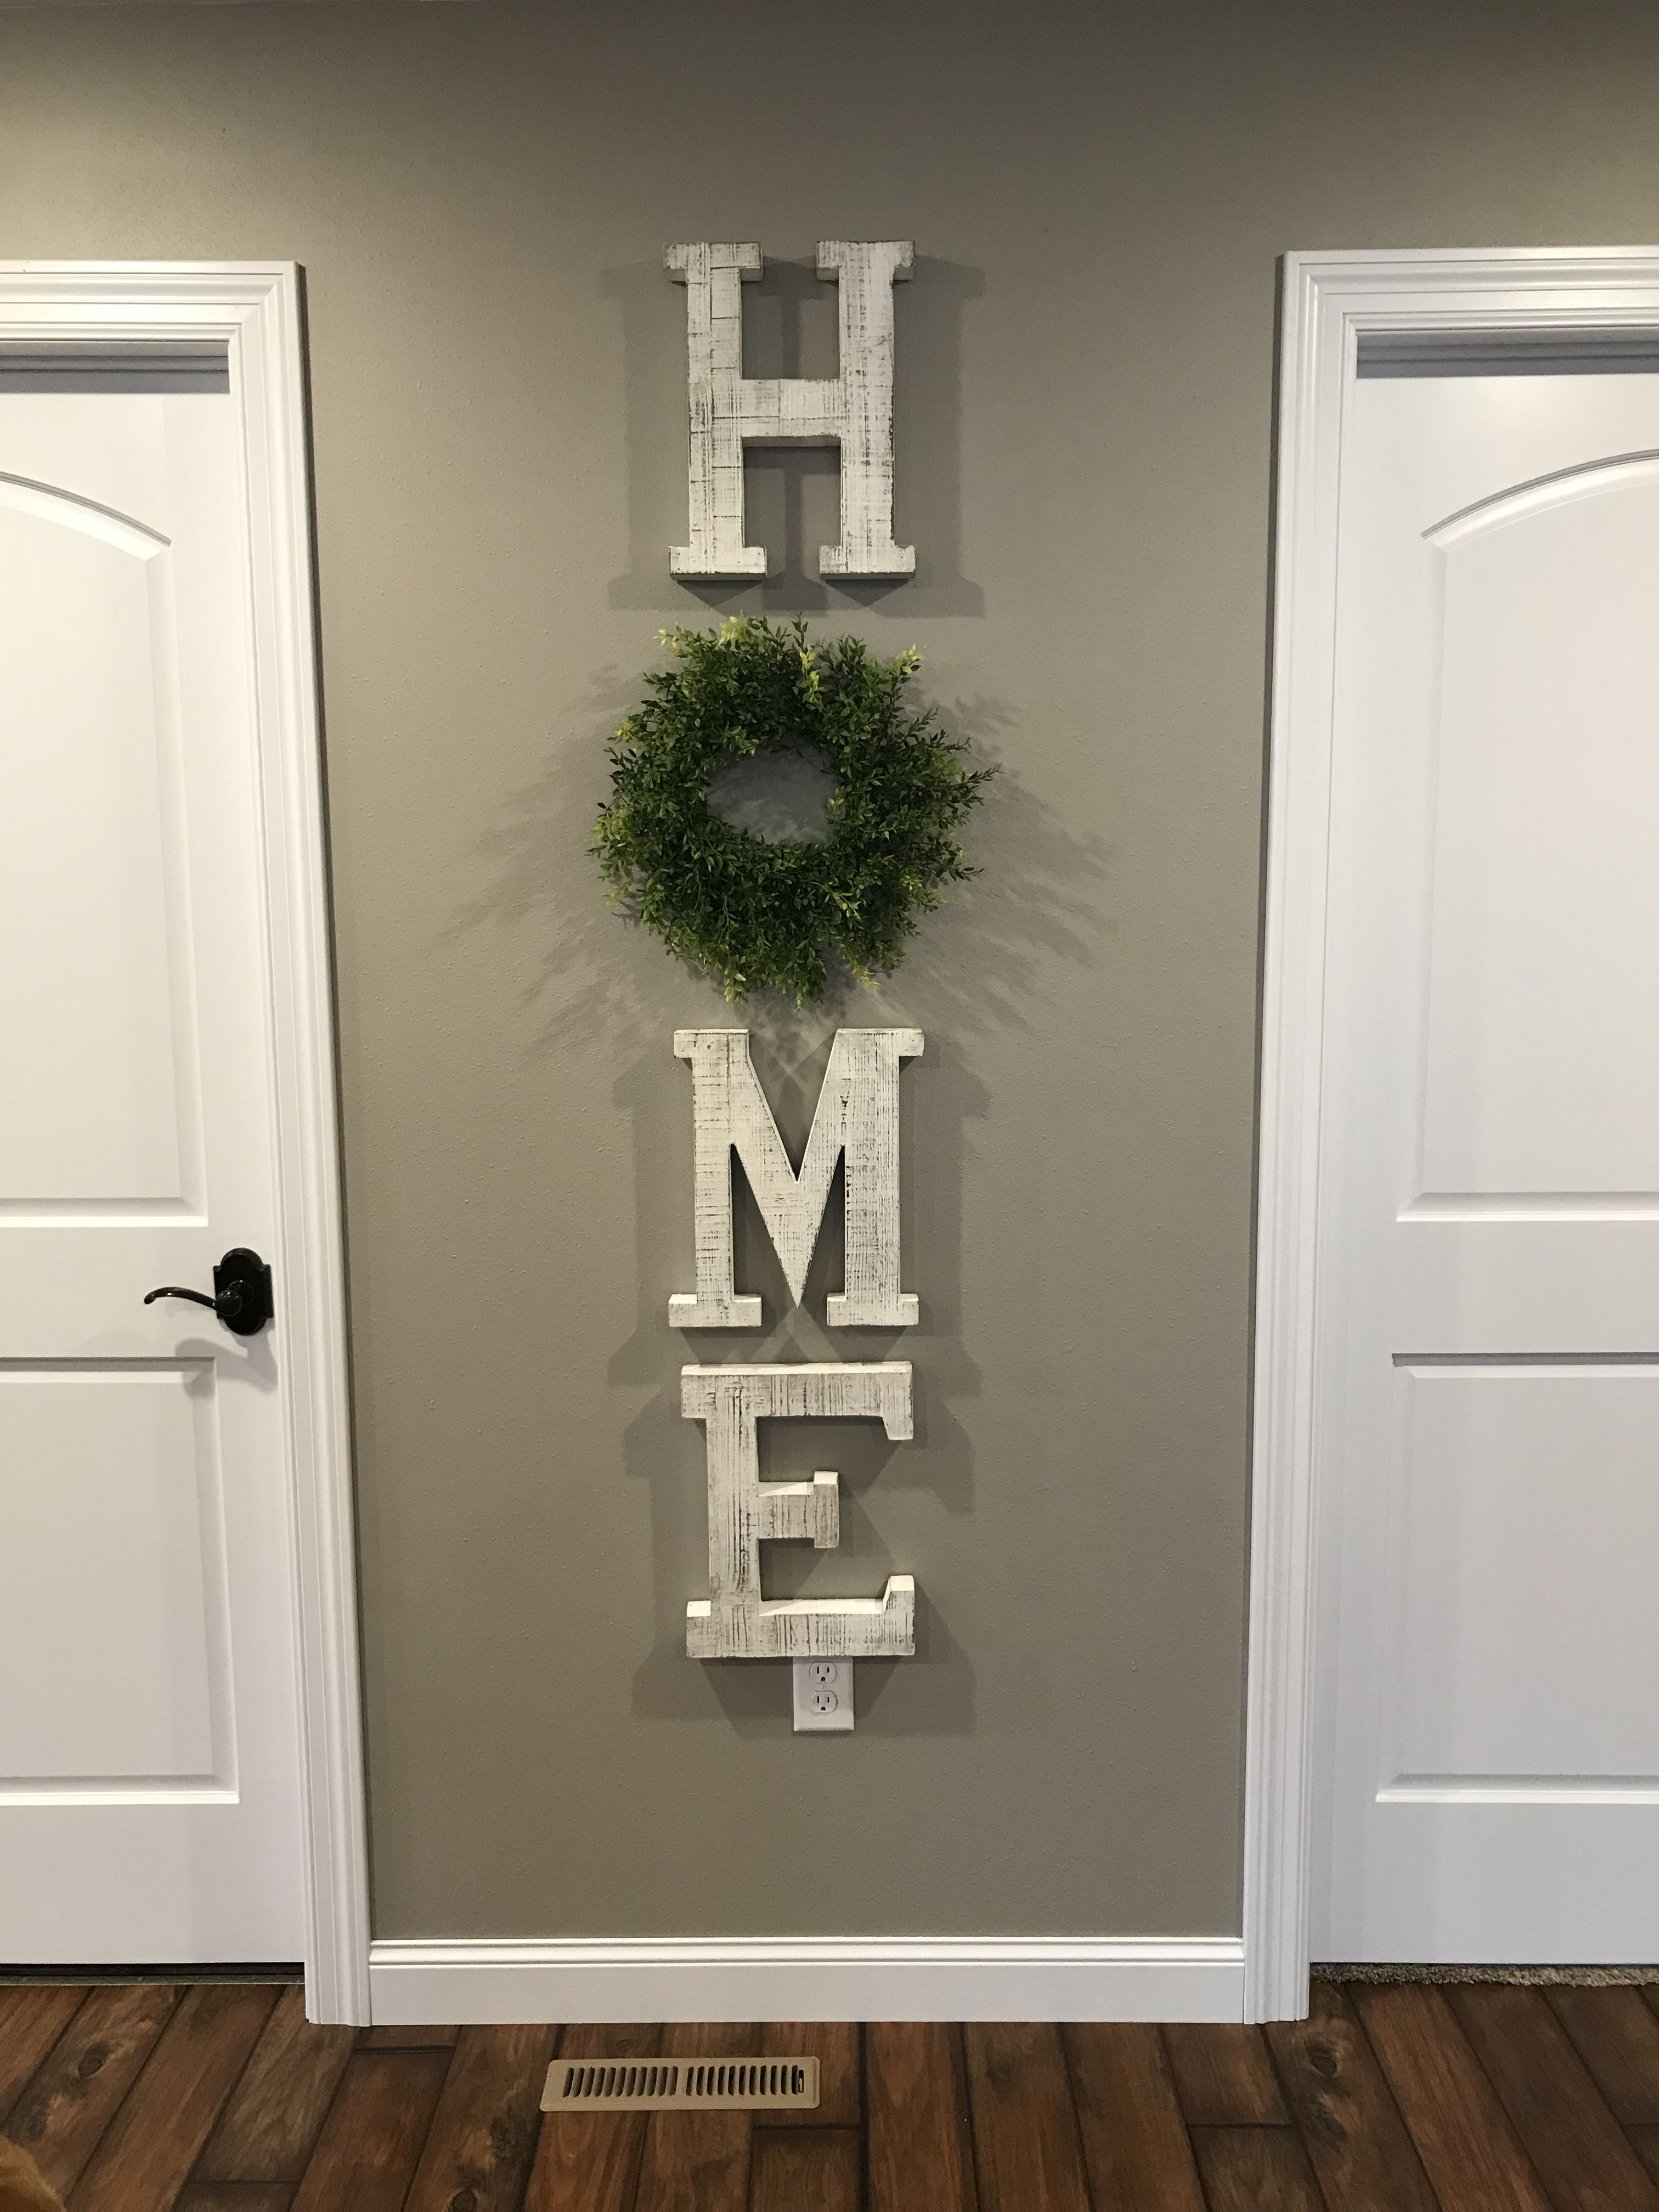 Home Letters And Wreath From Hobby Lobby Farmhouse Decor Living